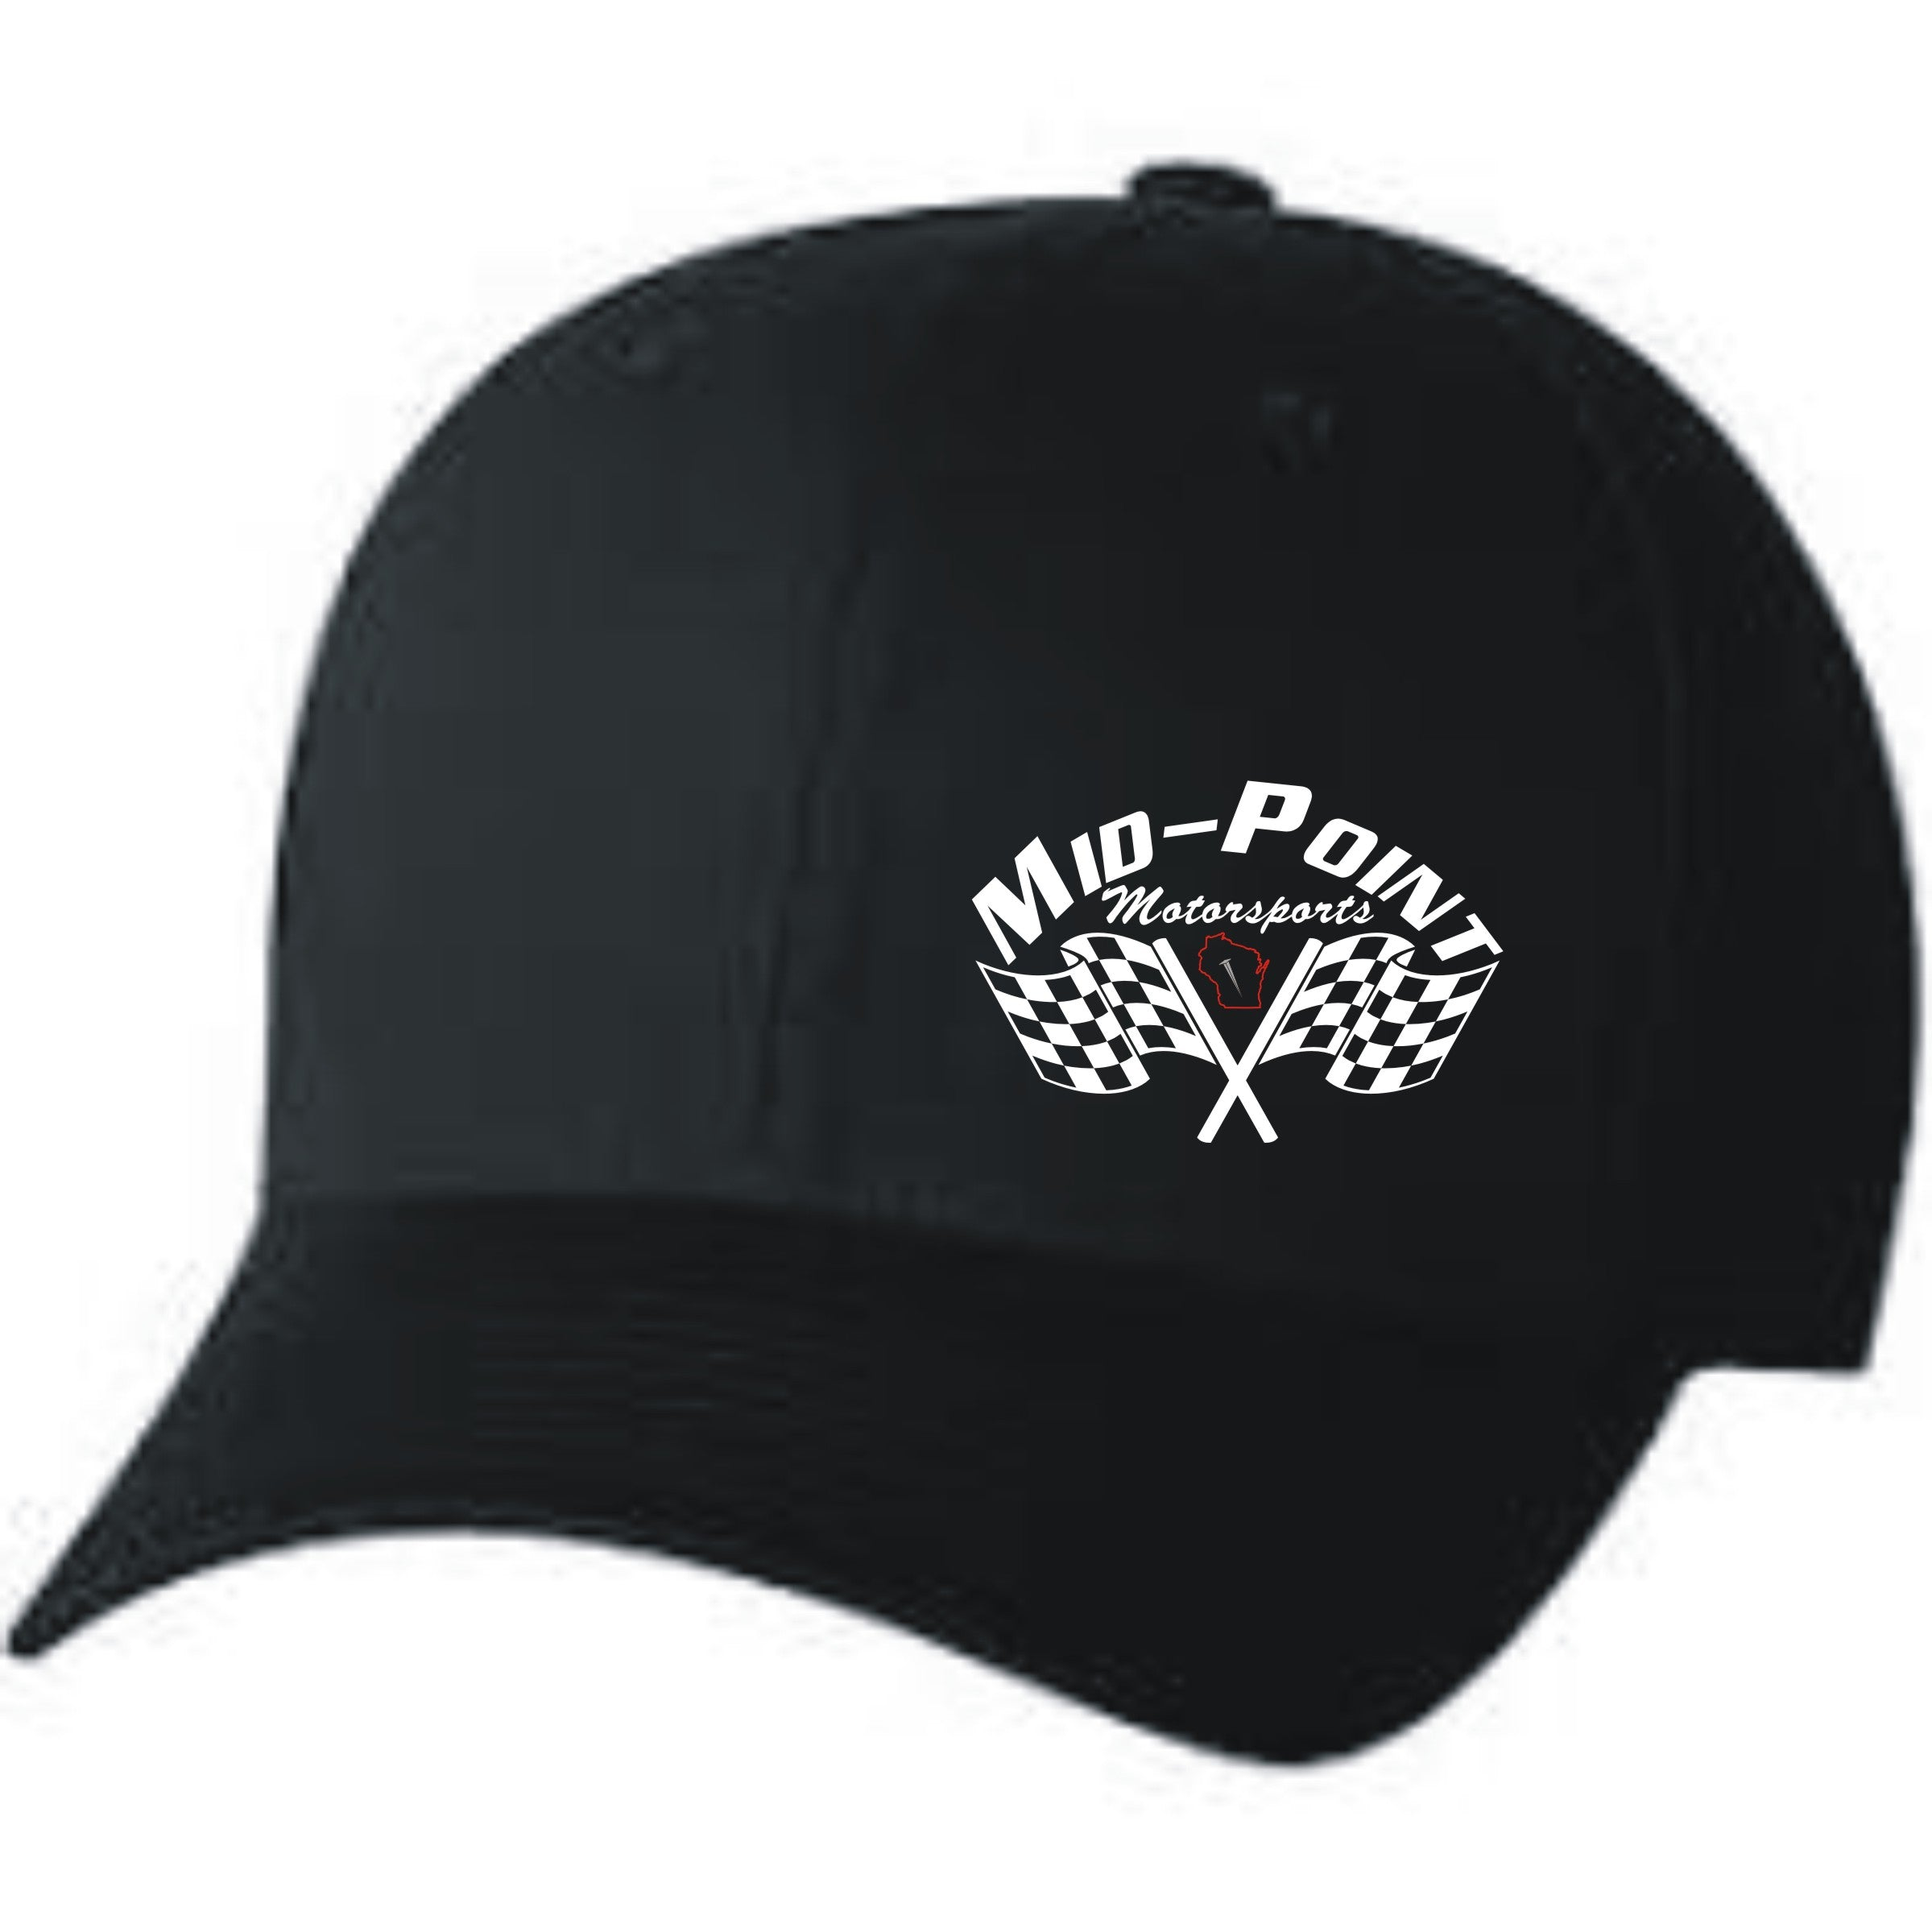 Mid-Point / Taylor Racing Hats